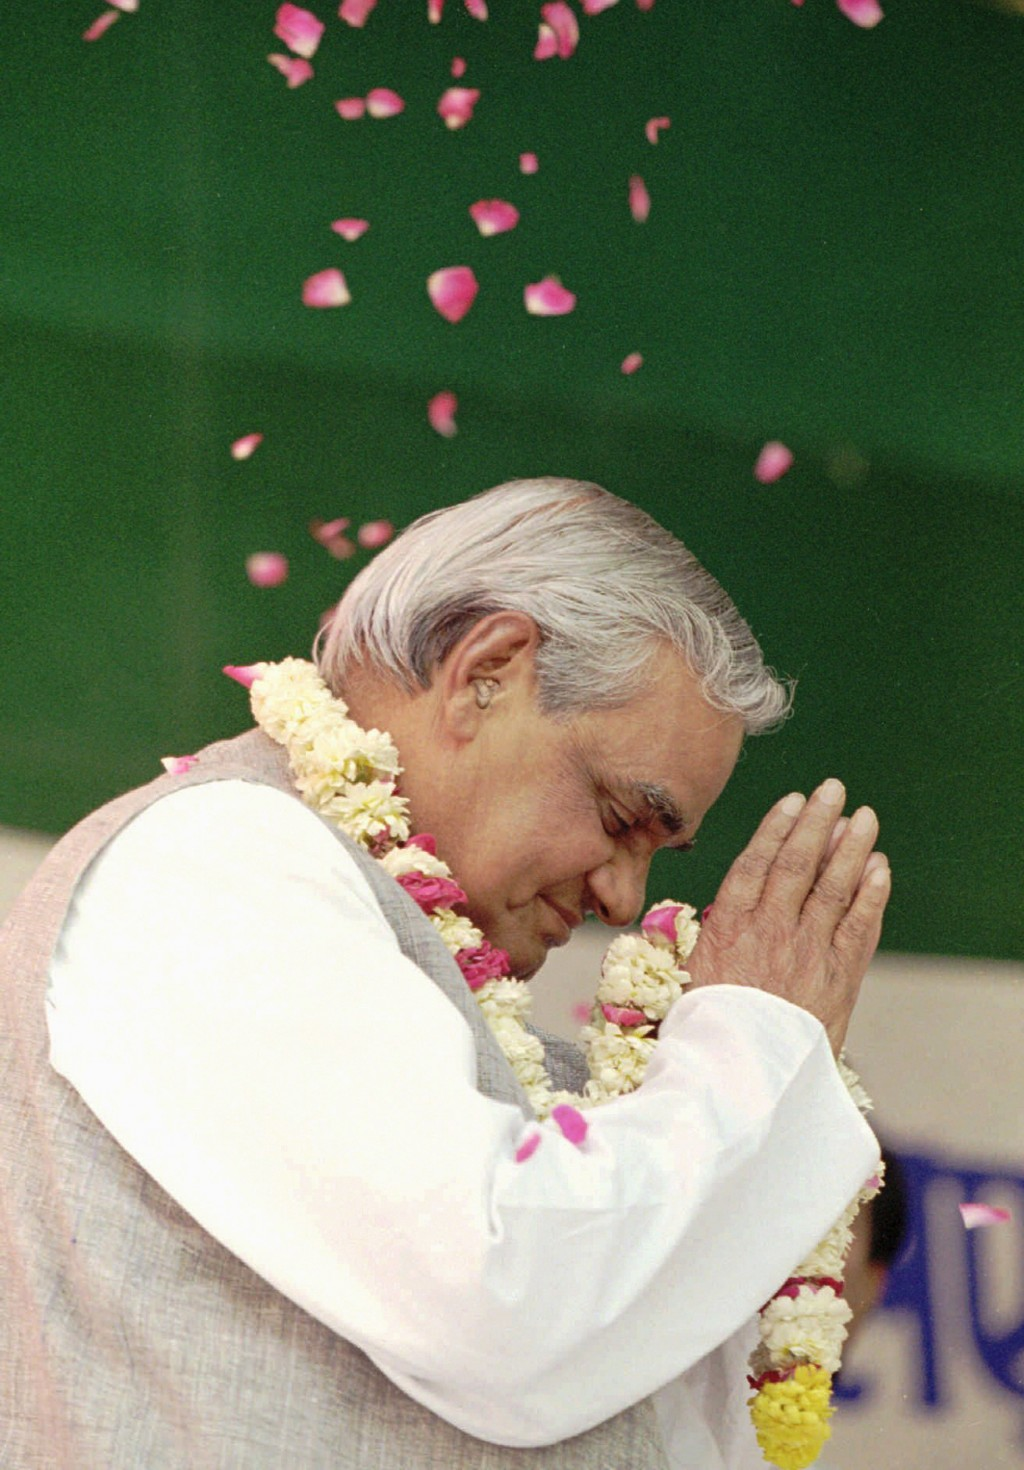 FILE - In this April 25, 1996 file photo, the Hindu nationalist party candidate for Prime Minister Atal Bihari Vajpayee greets supporters and is showe...